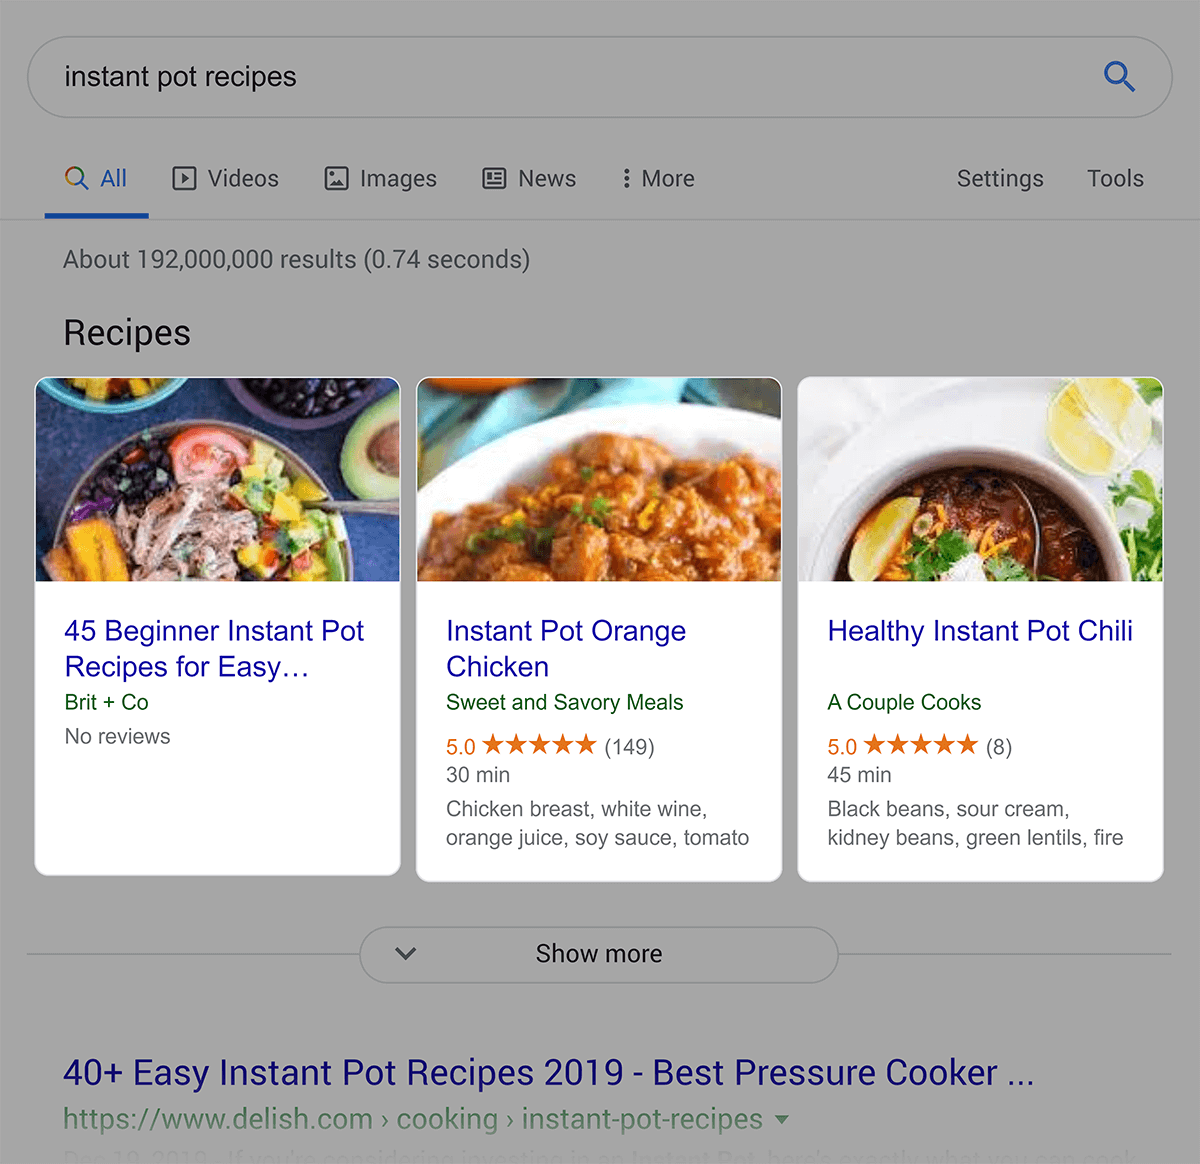 Review type snippet in SERP